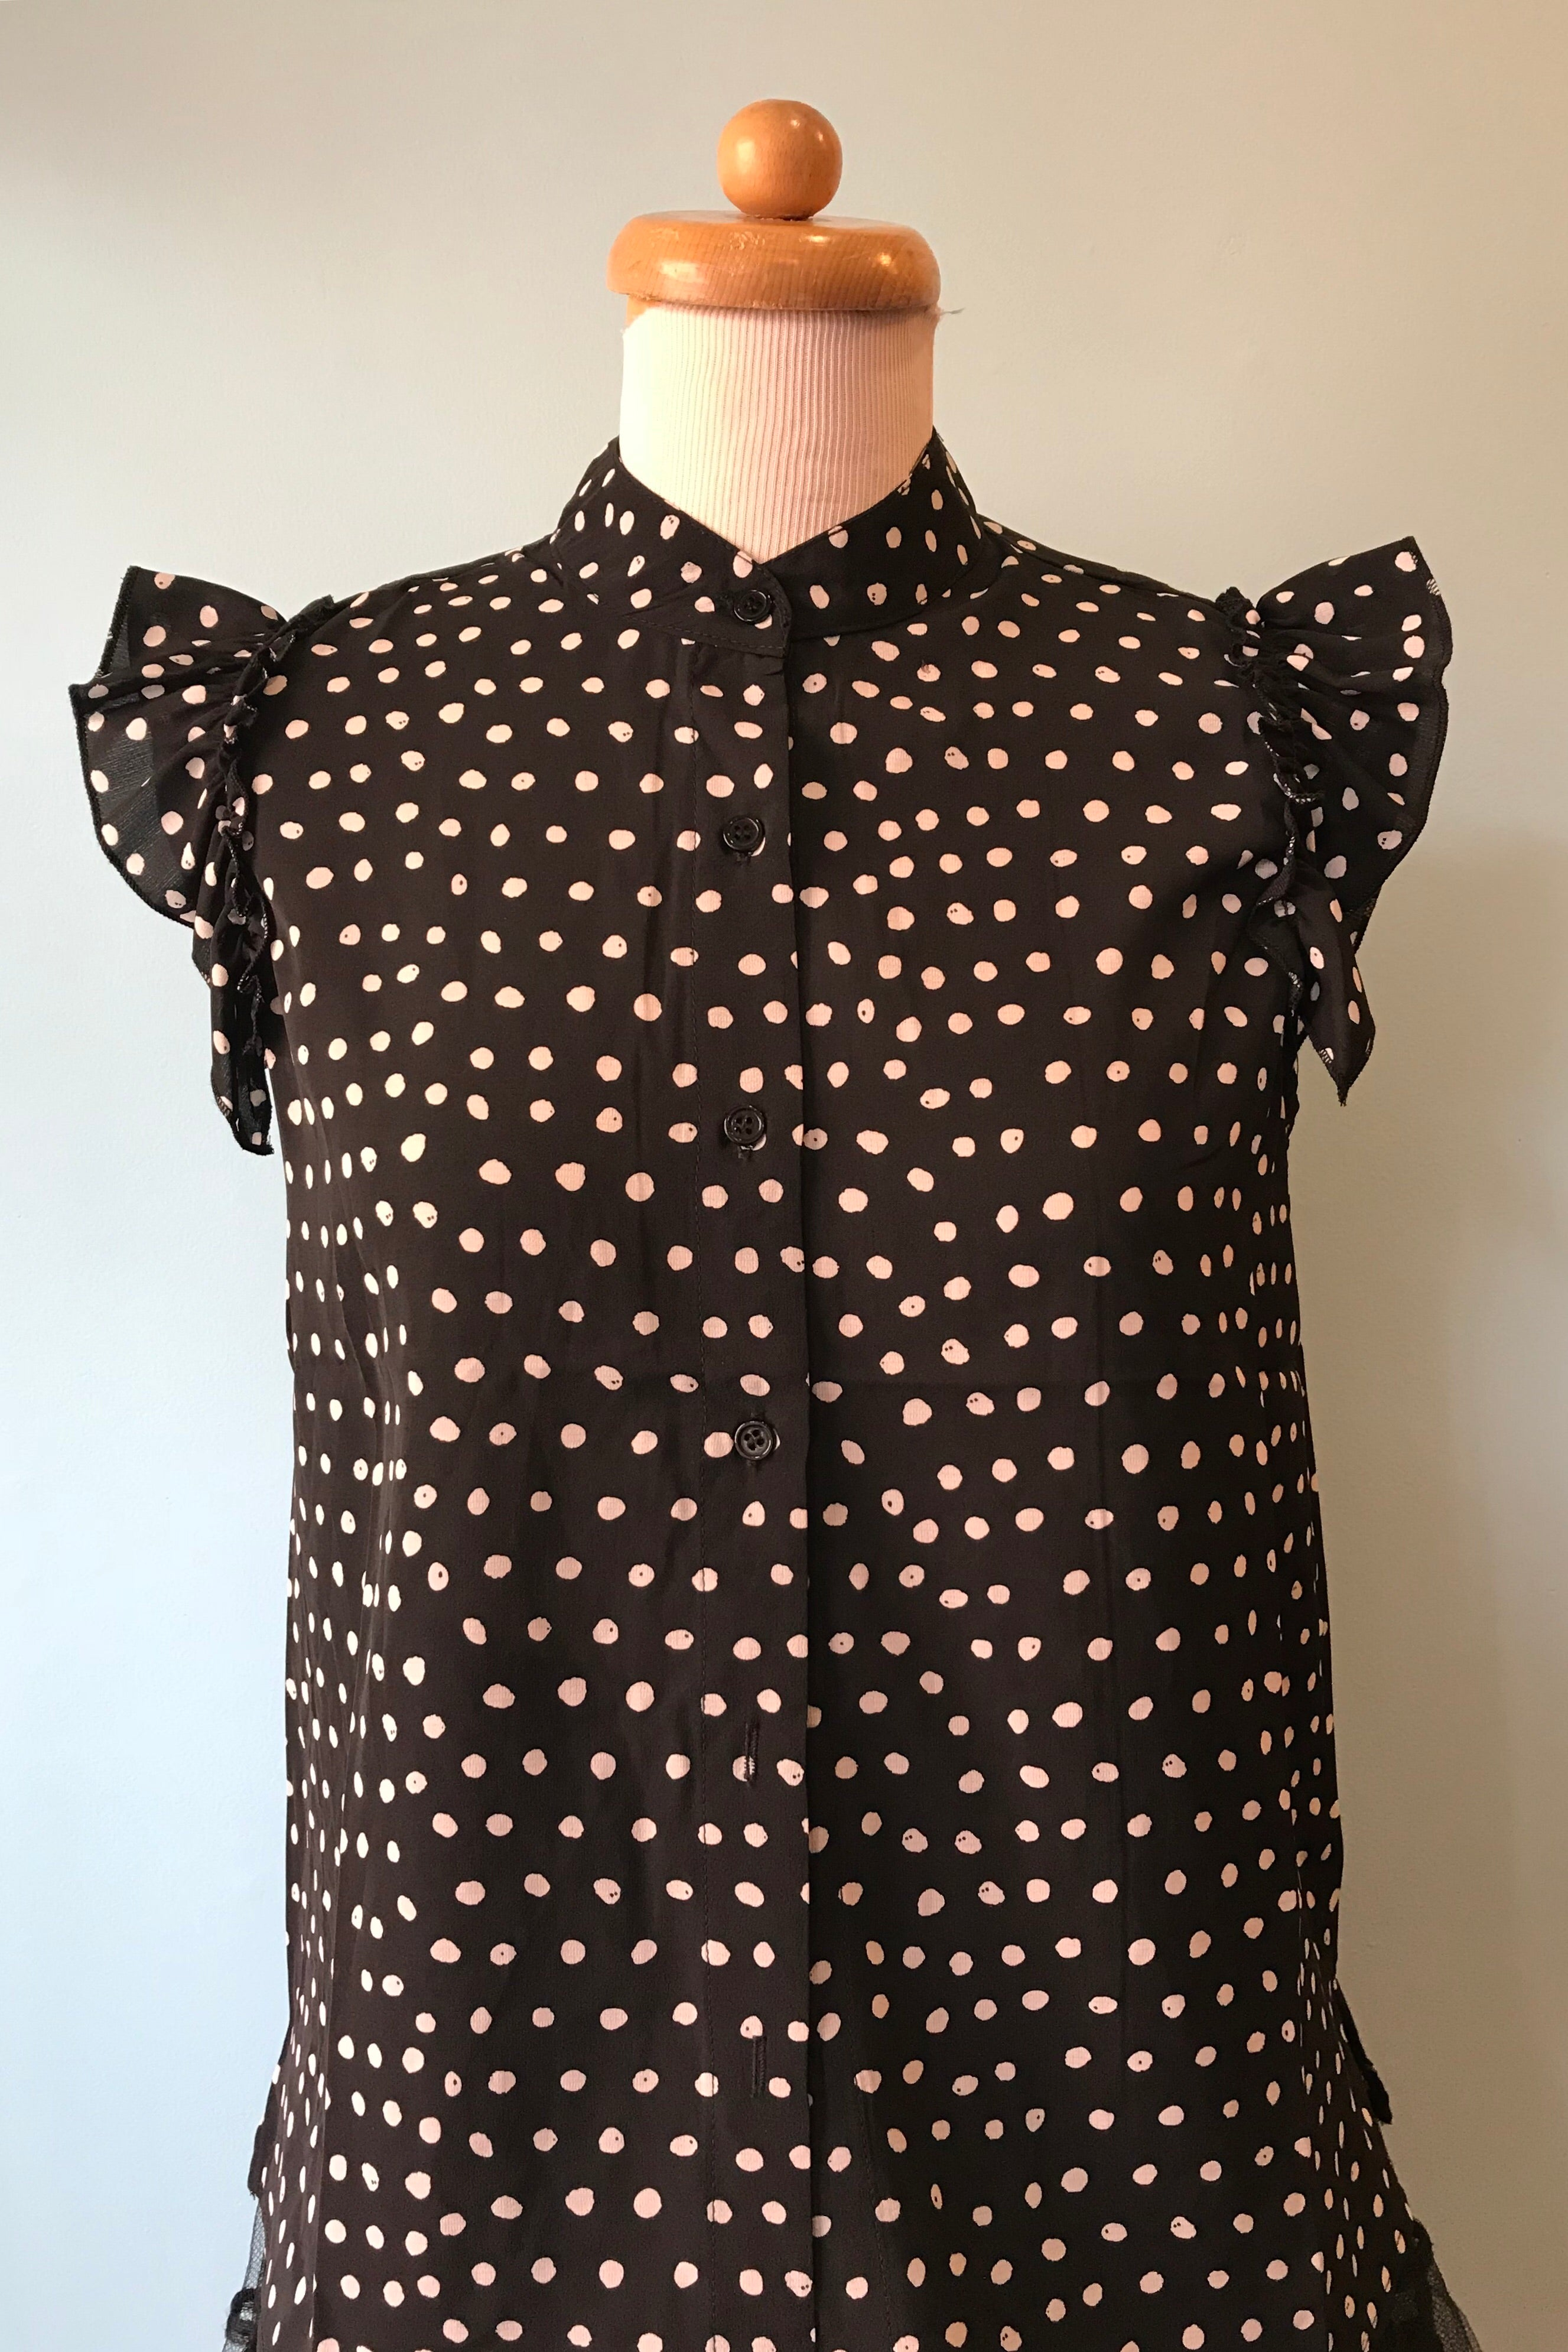 Ruffle Sleeve Blouse in Black & White Polka Dot